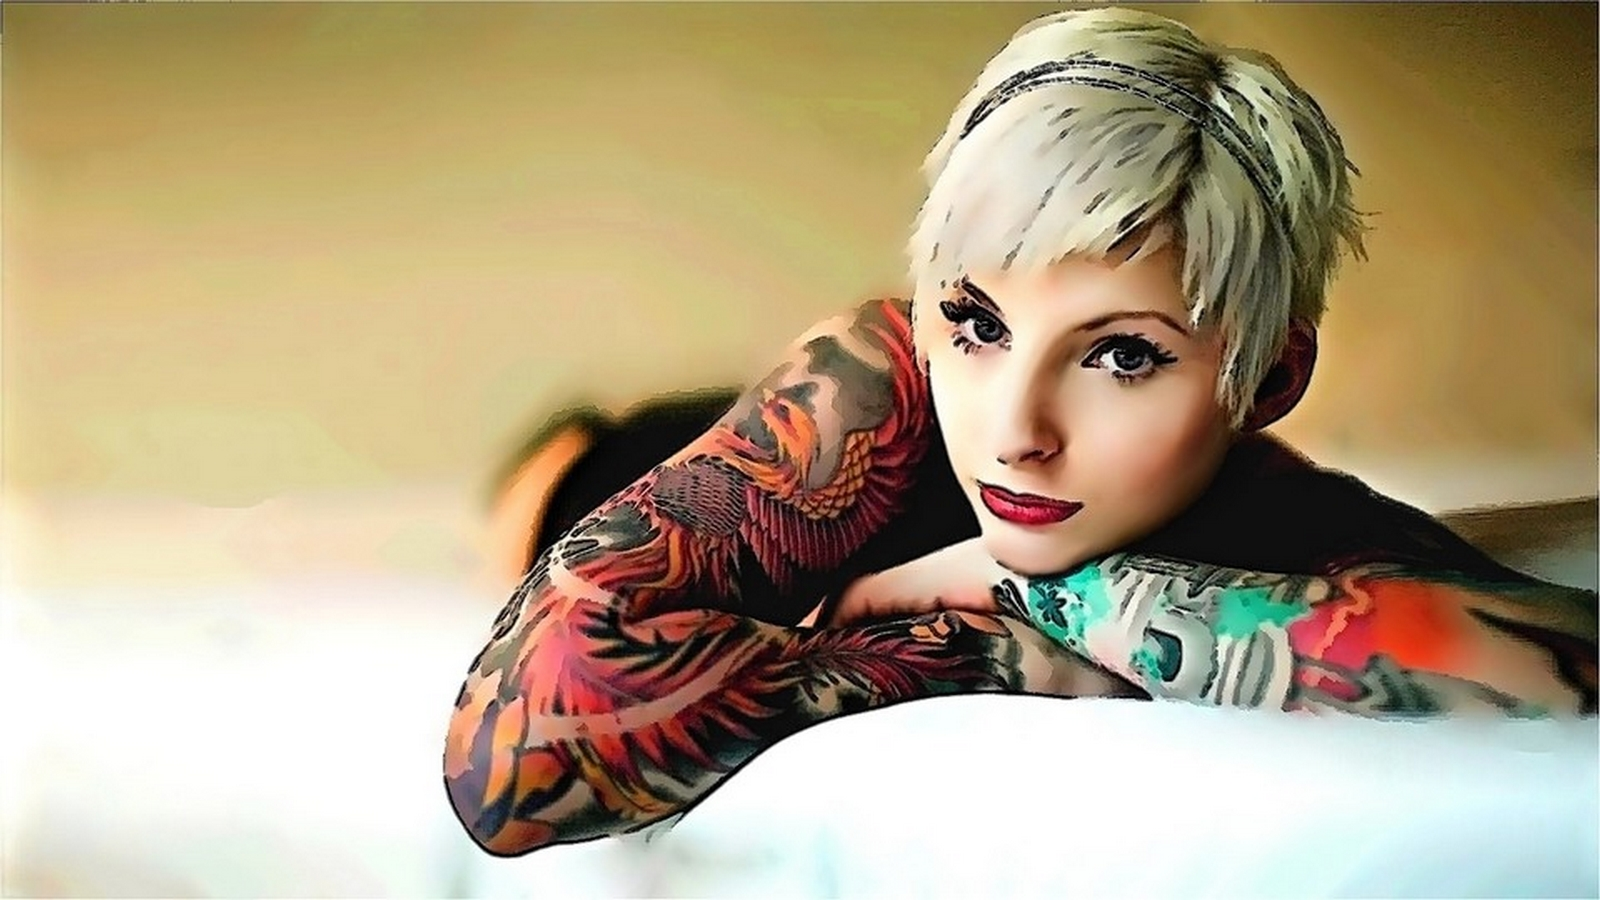 Tattooed Women Wallpapers Part 2